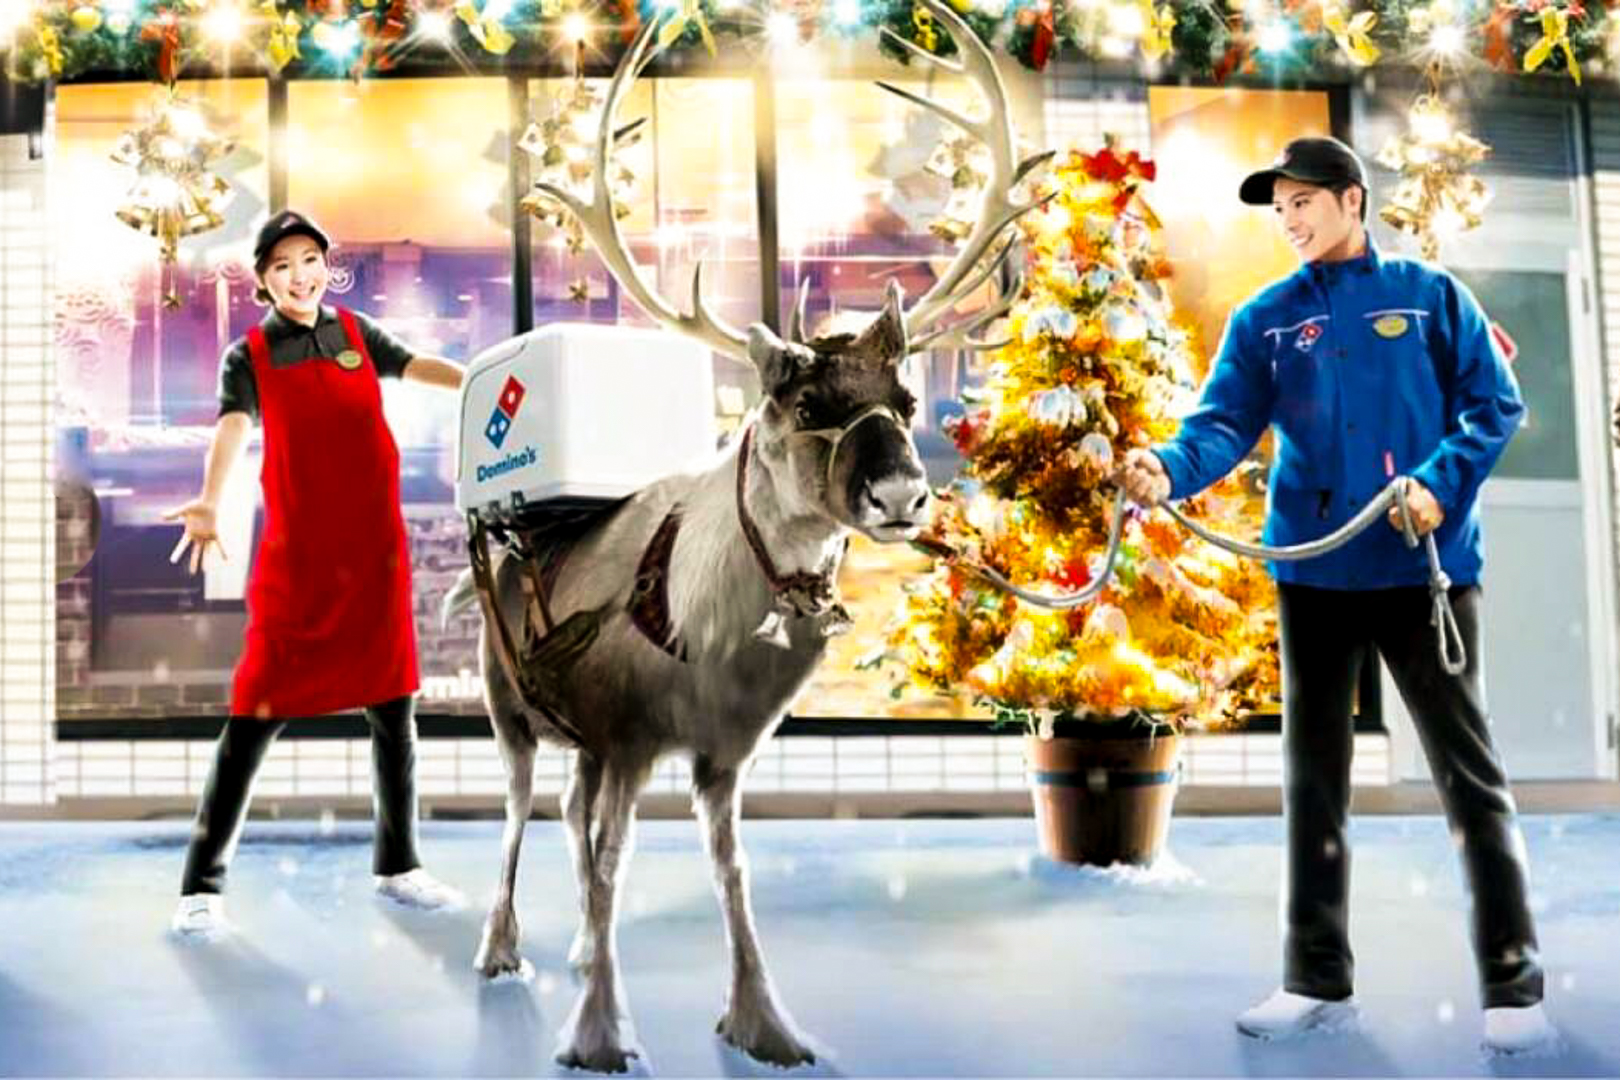 A reindeer with a Domino's delivery container strapped to its back stands outside a festively-decorated Domino's Japan store with a Christmas tree out front. Two staff members, a male staff member in blue holding the reindeer's reins and a female staff member in red with her hands outstretched, look on with delight.